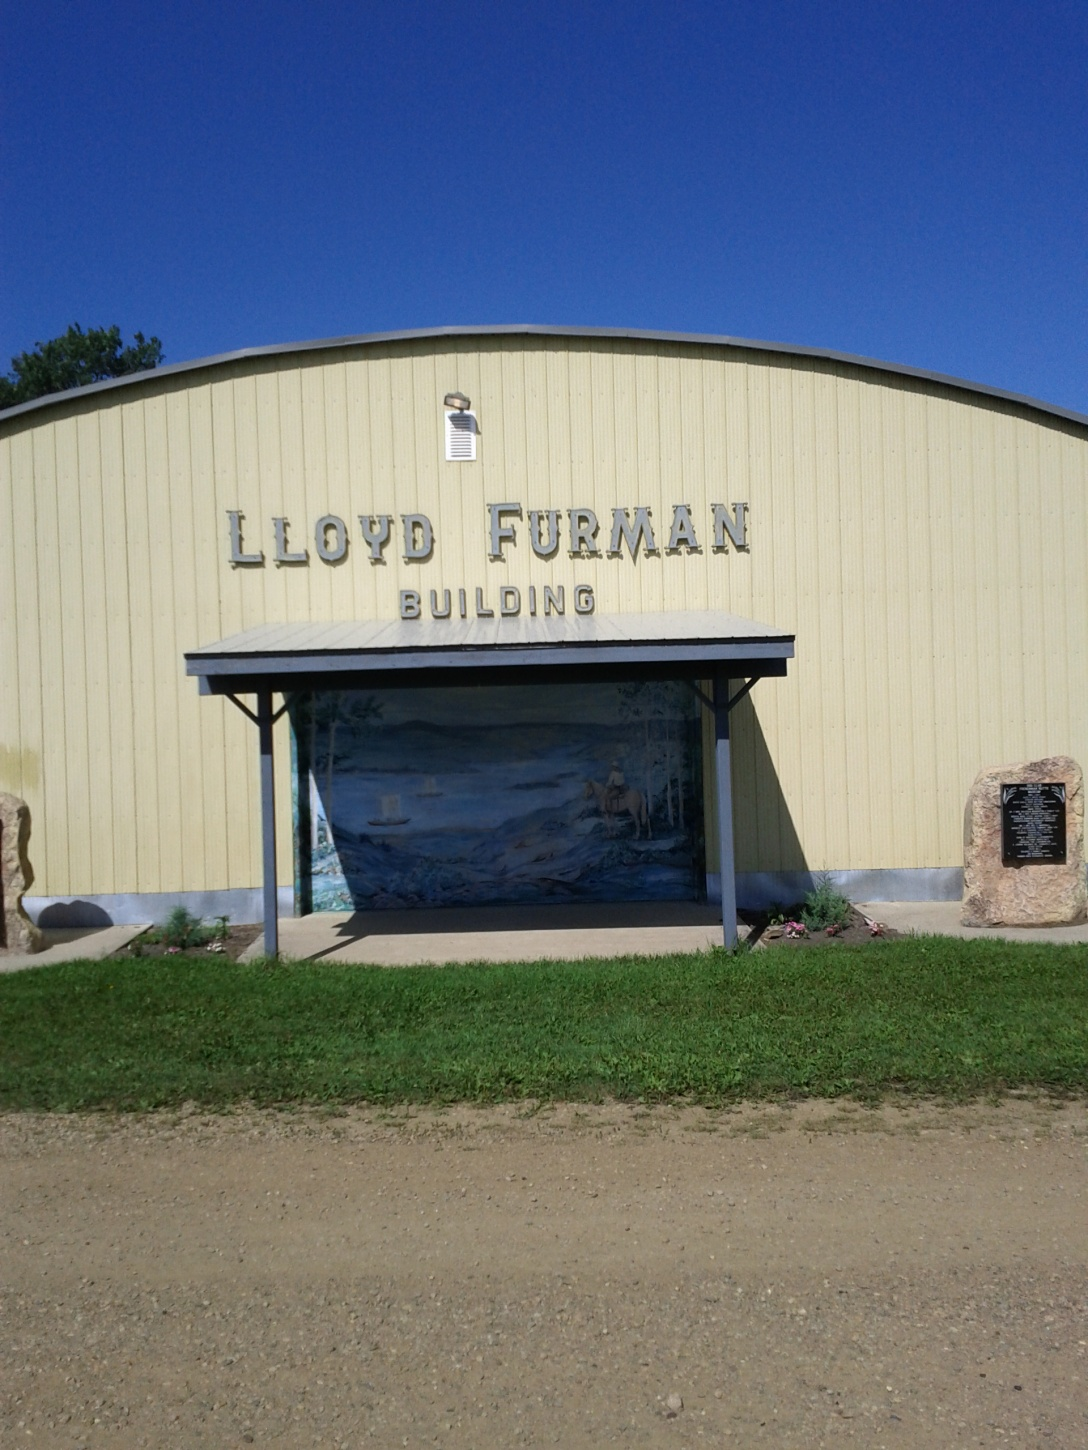 Lloyd Furman Building